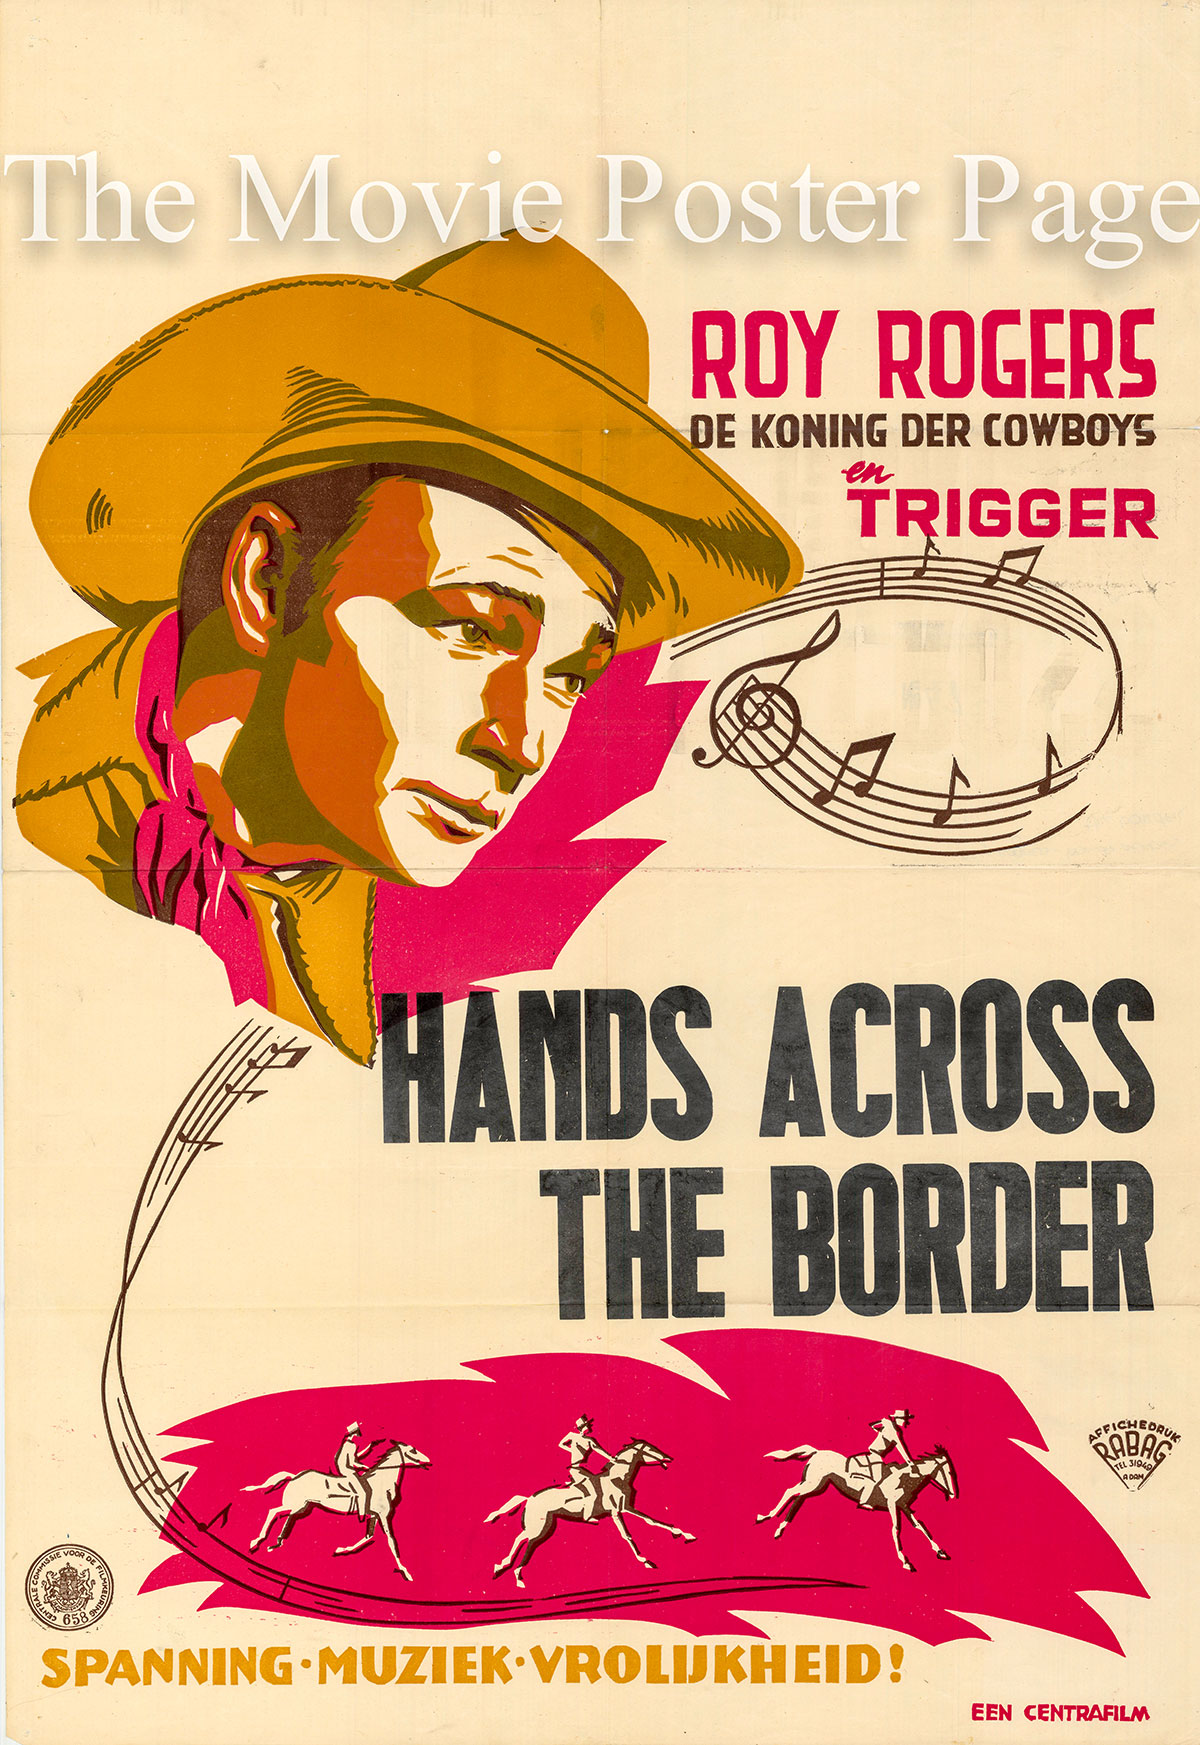 Pictured is a Dutch promotional poster for the 1944 Joseph Kane film Hands Across the Border starring Roy Rogers.